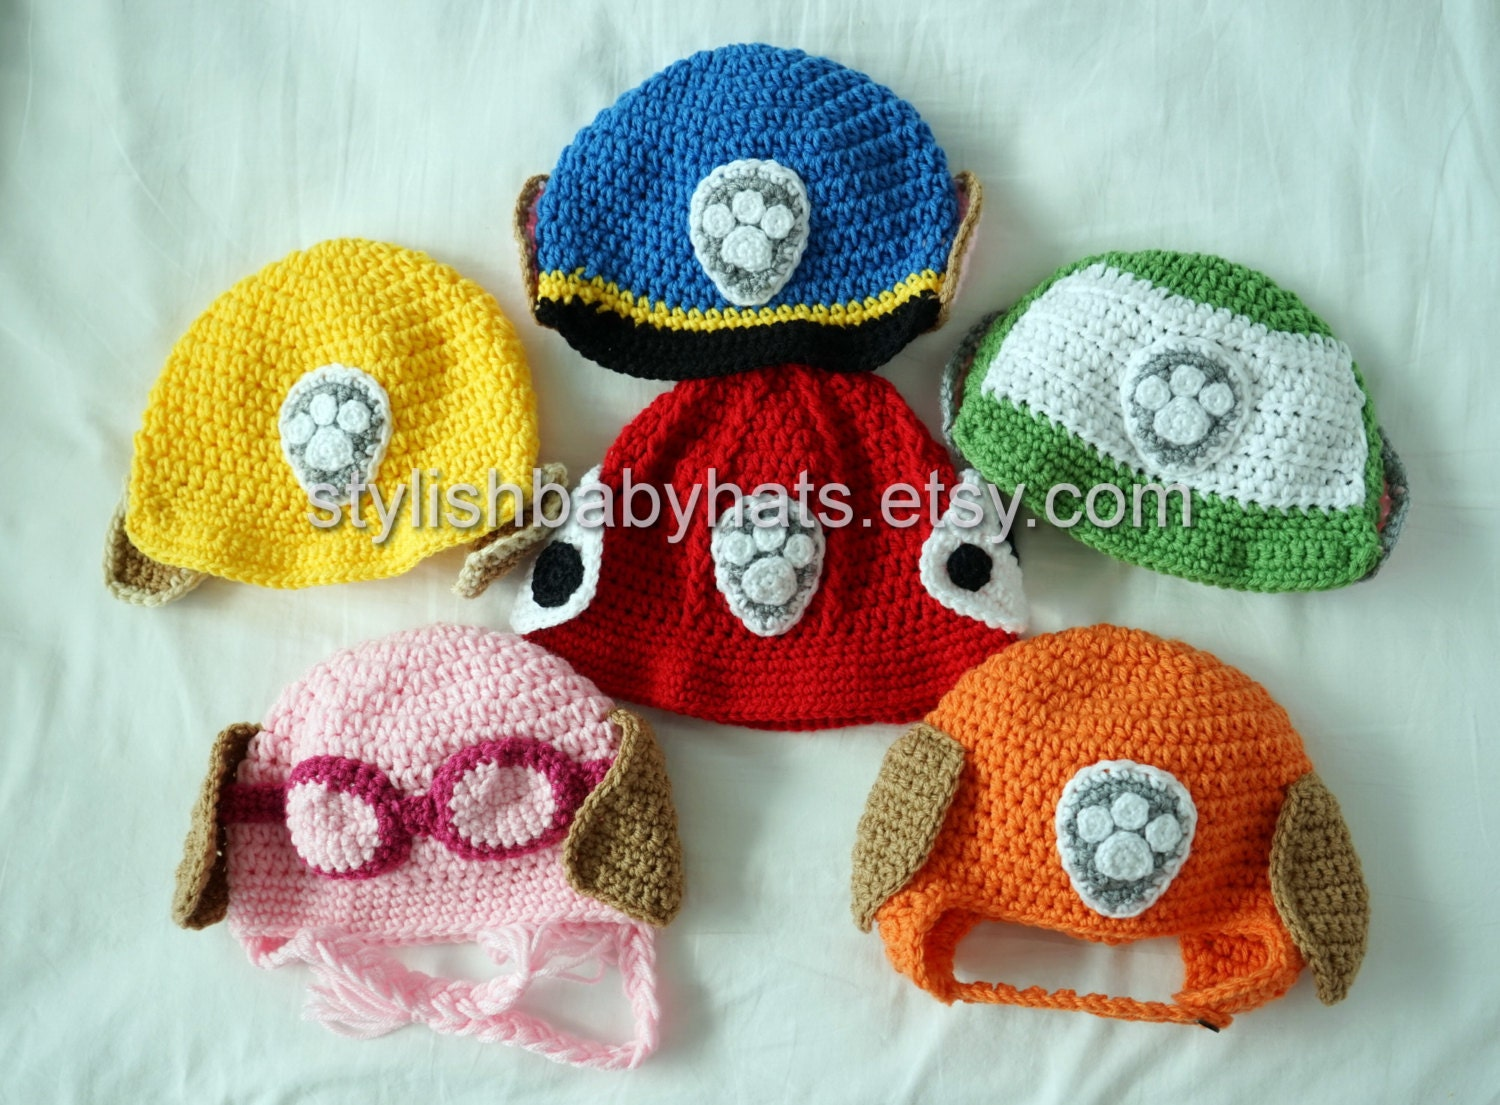 3x PAW Patrol Hats Crochet Baby Hat Dog Hat photo prop